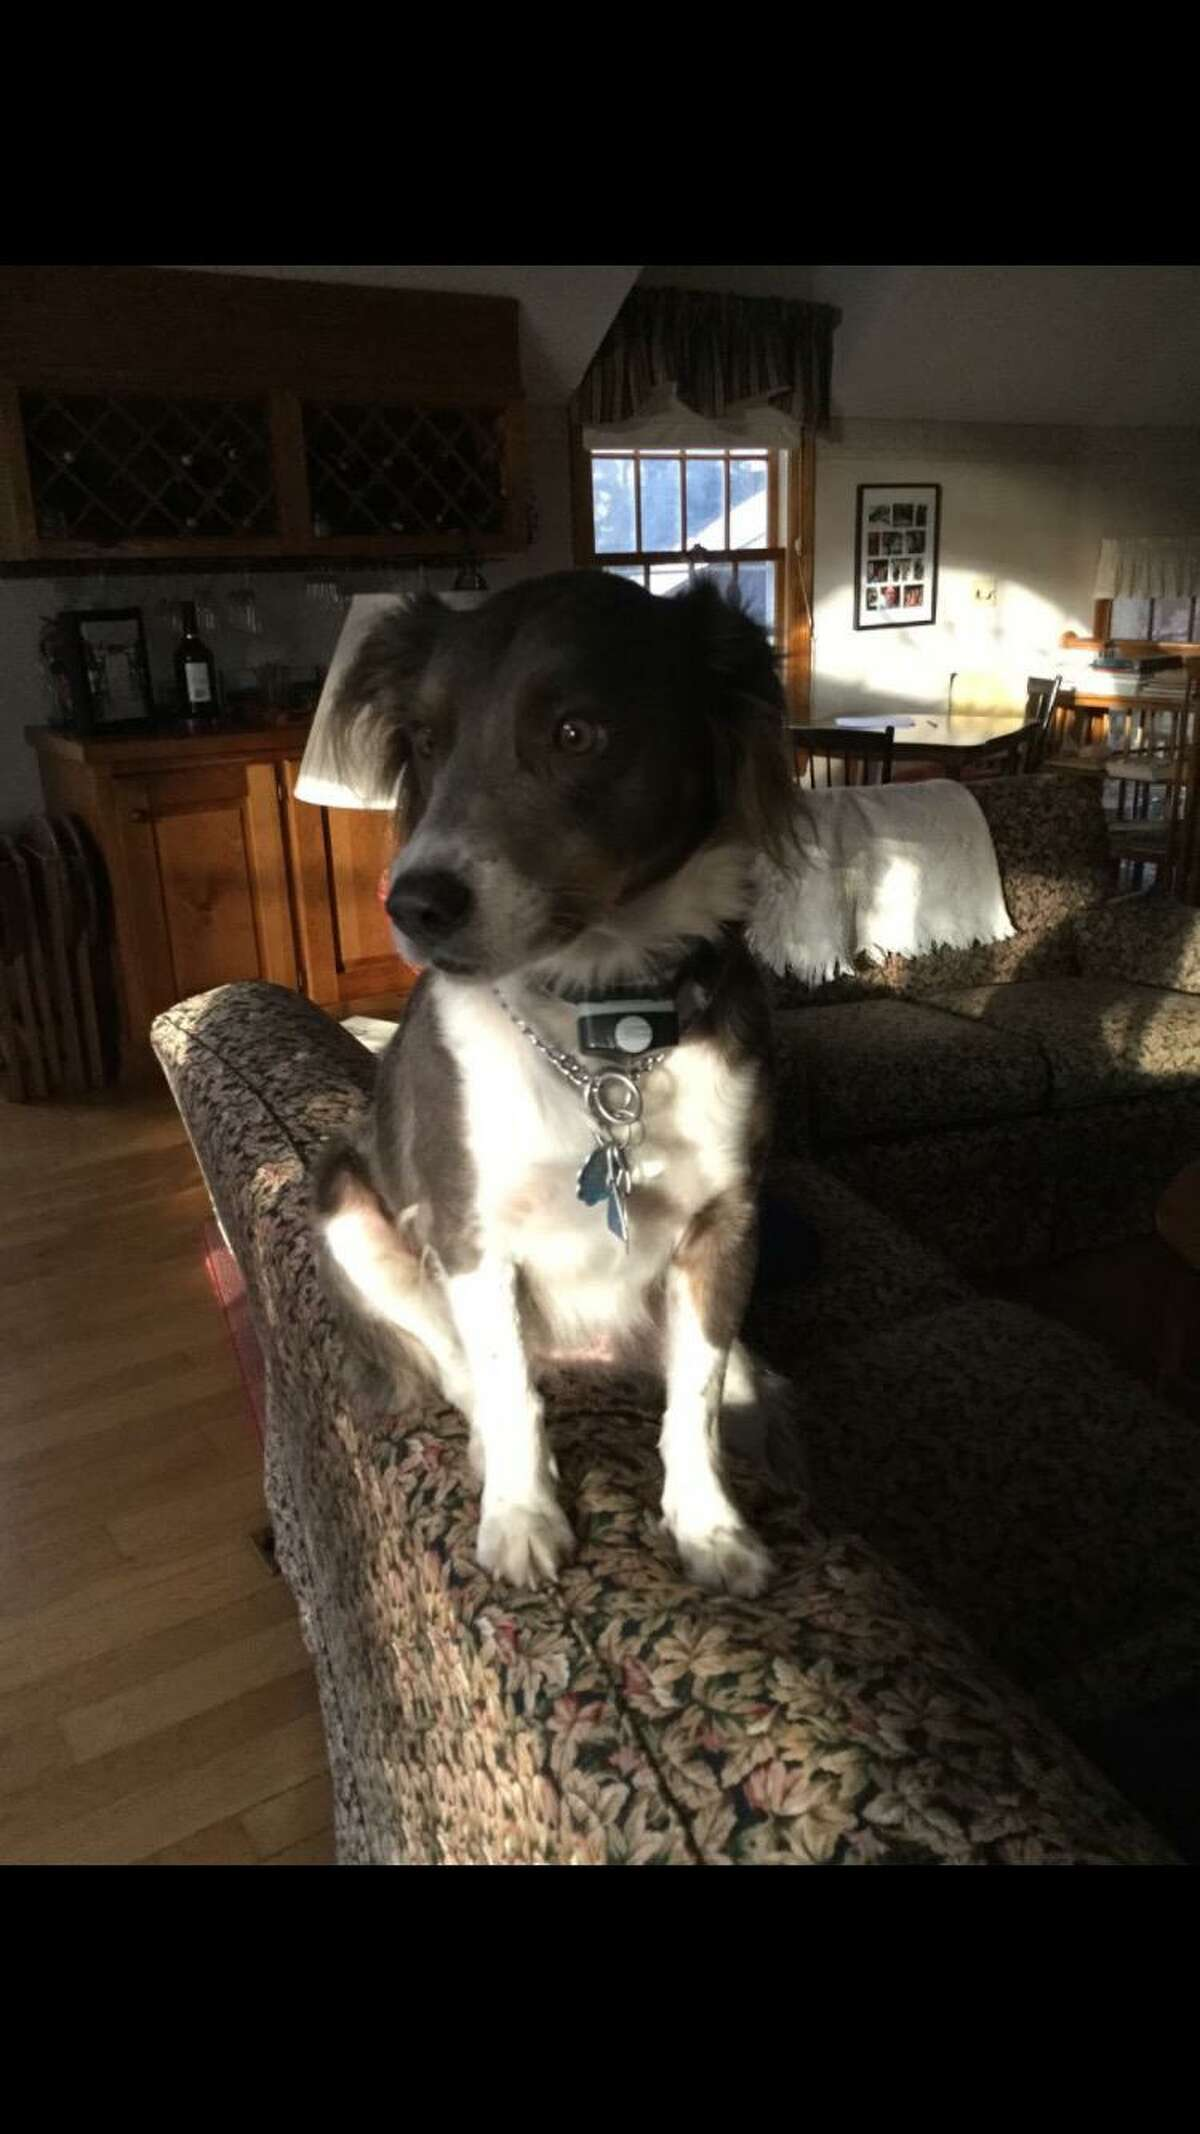 A 25-pound Australian shepherd mix named Everett has gone missing in the vicinity of Deer Run Road and Spectacle Lane. If anyone sees him, they are asked to call his family.